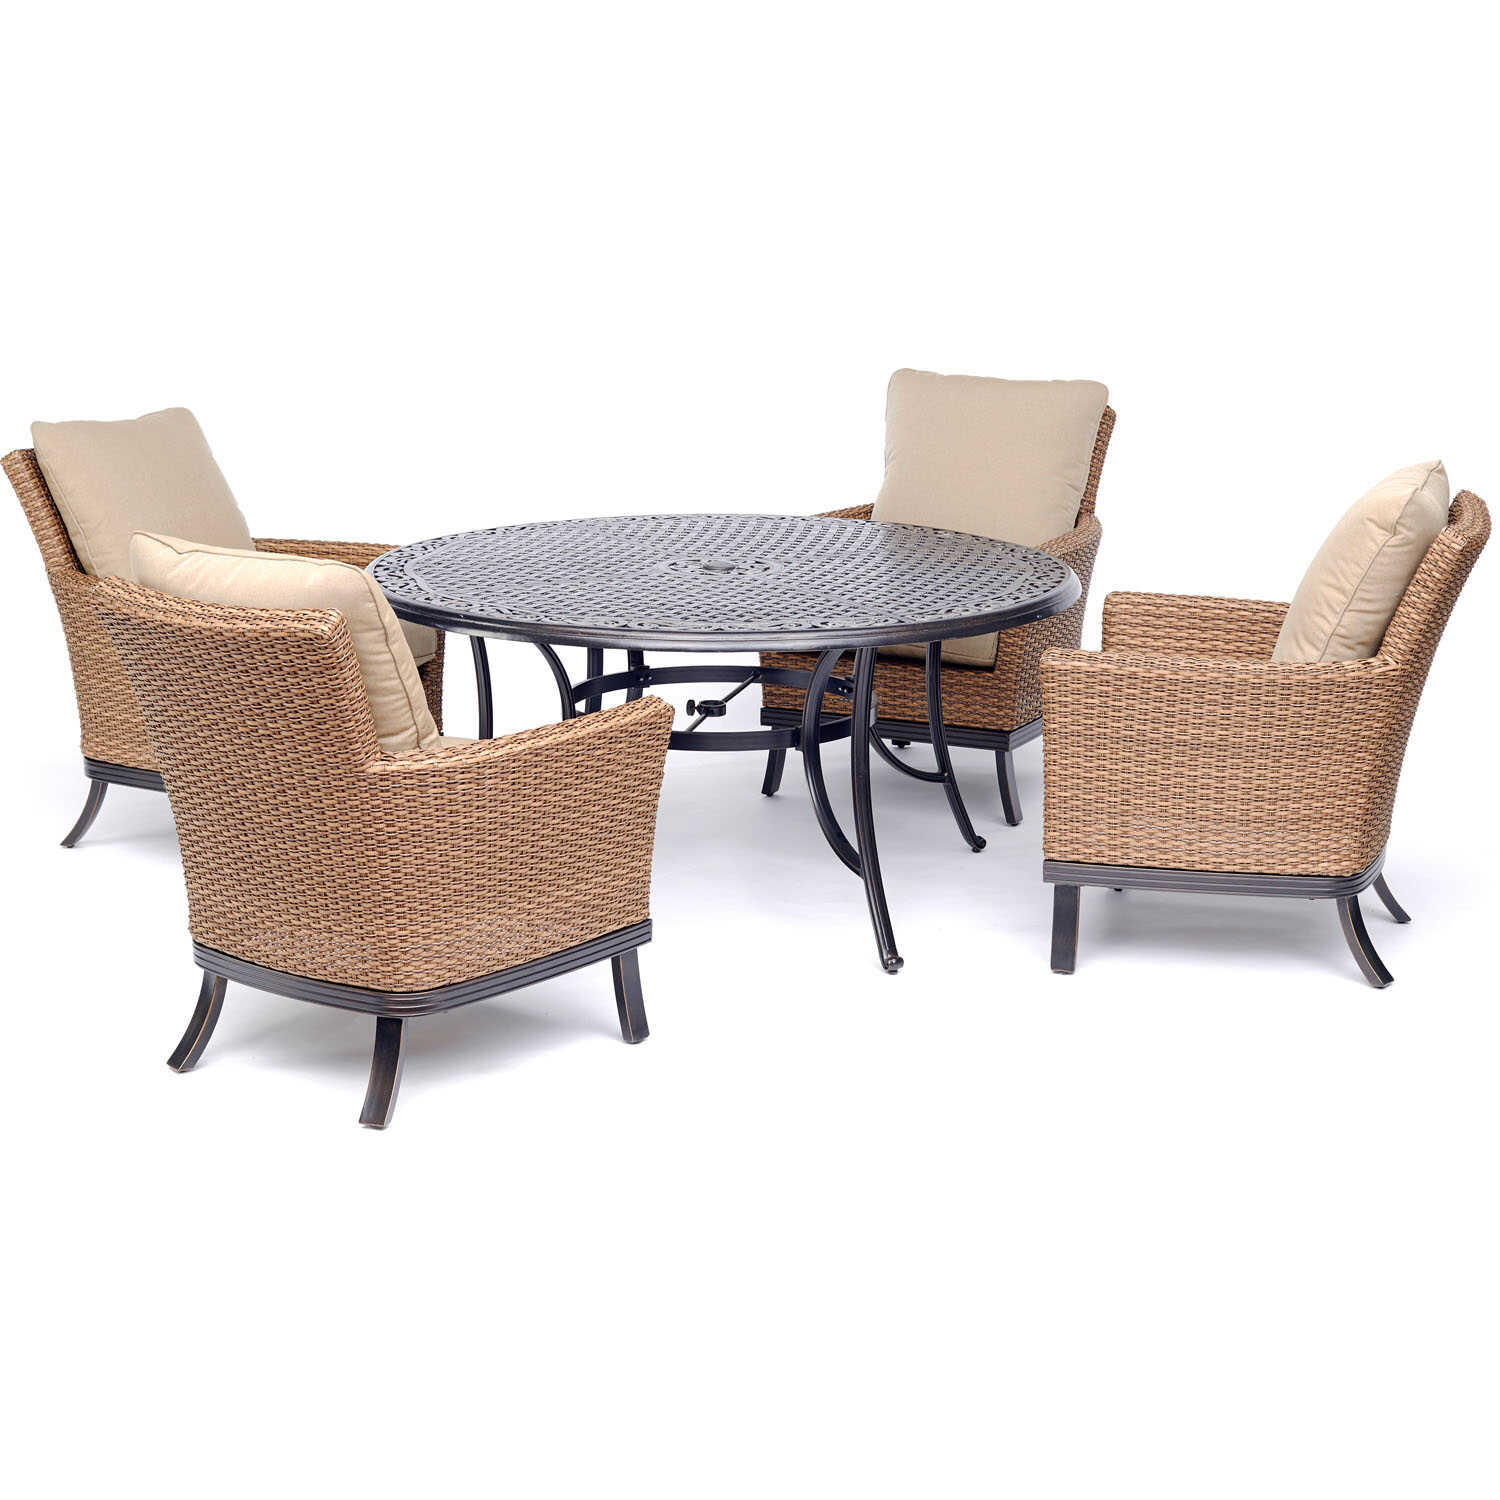 Hanover  Traditions  5 pc. Bronze  Aluminum  Dining Patio Set  Tan